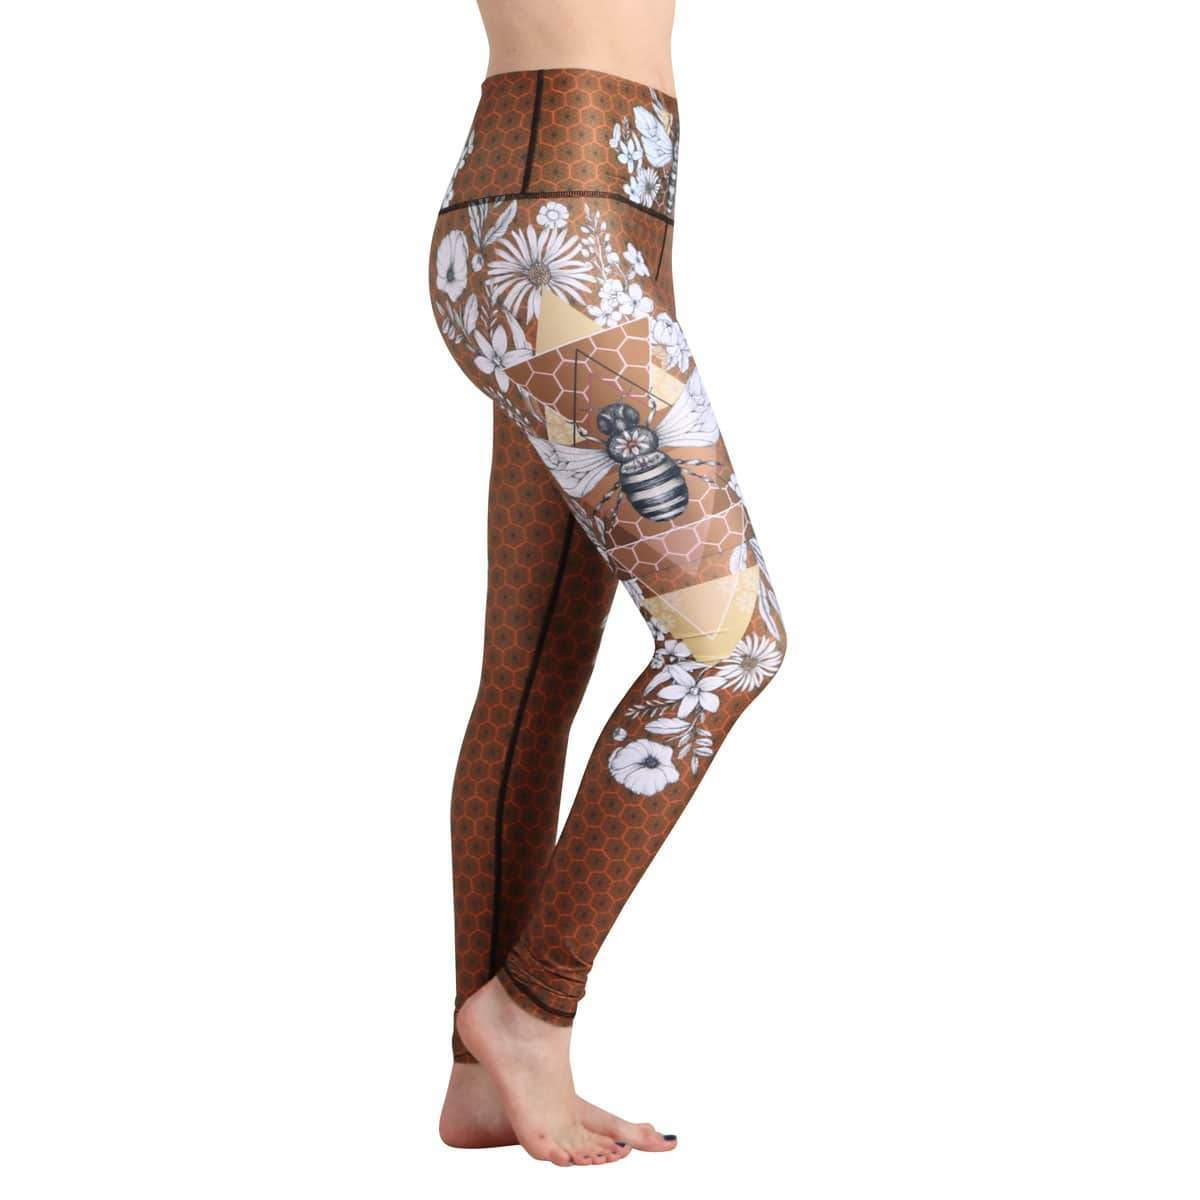 yoga-legging-eco-friendly-sweat-wicking-min.jpg